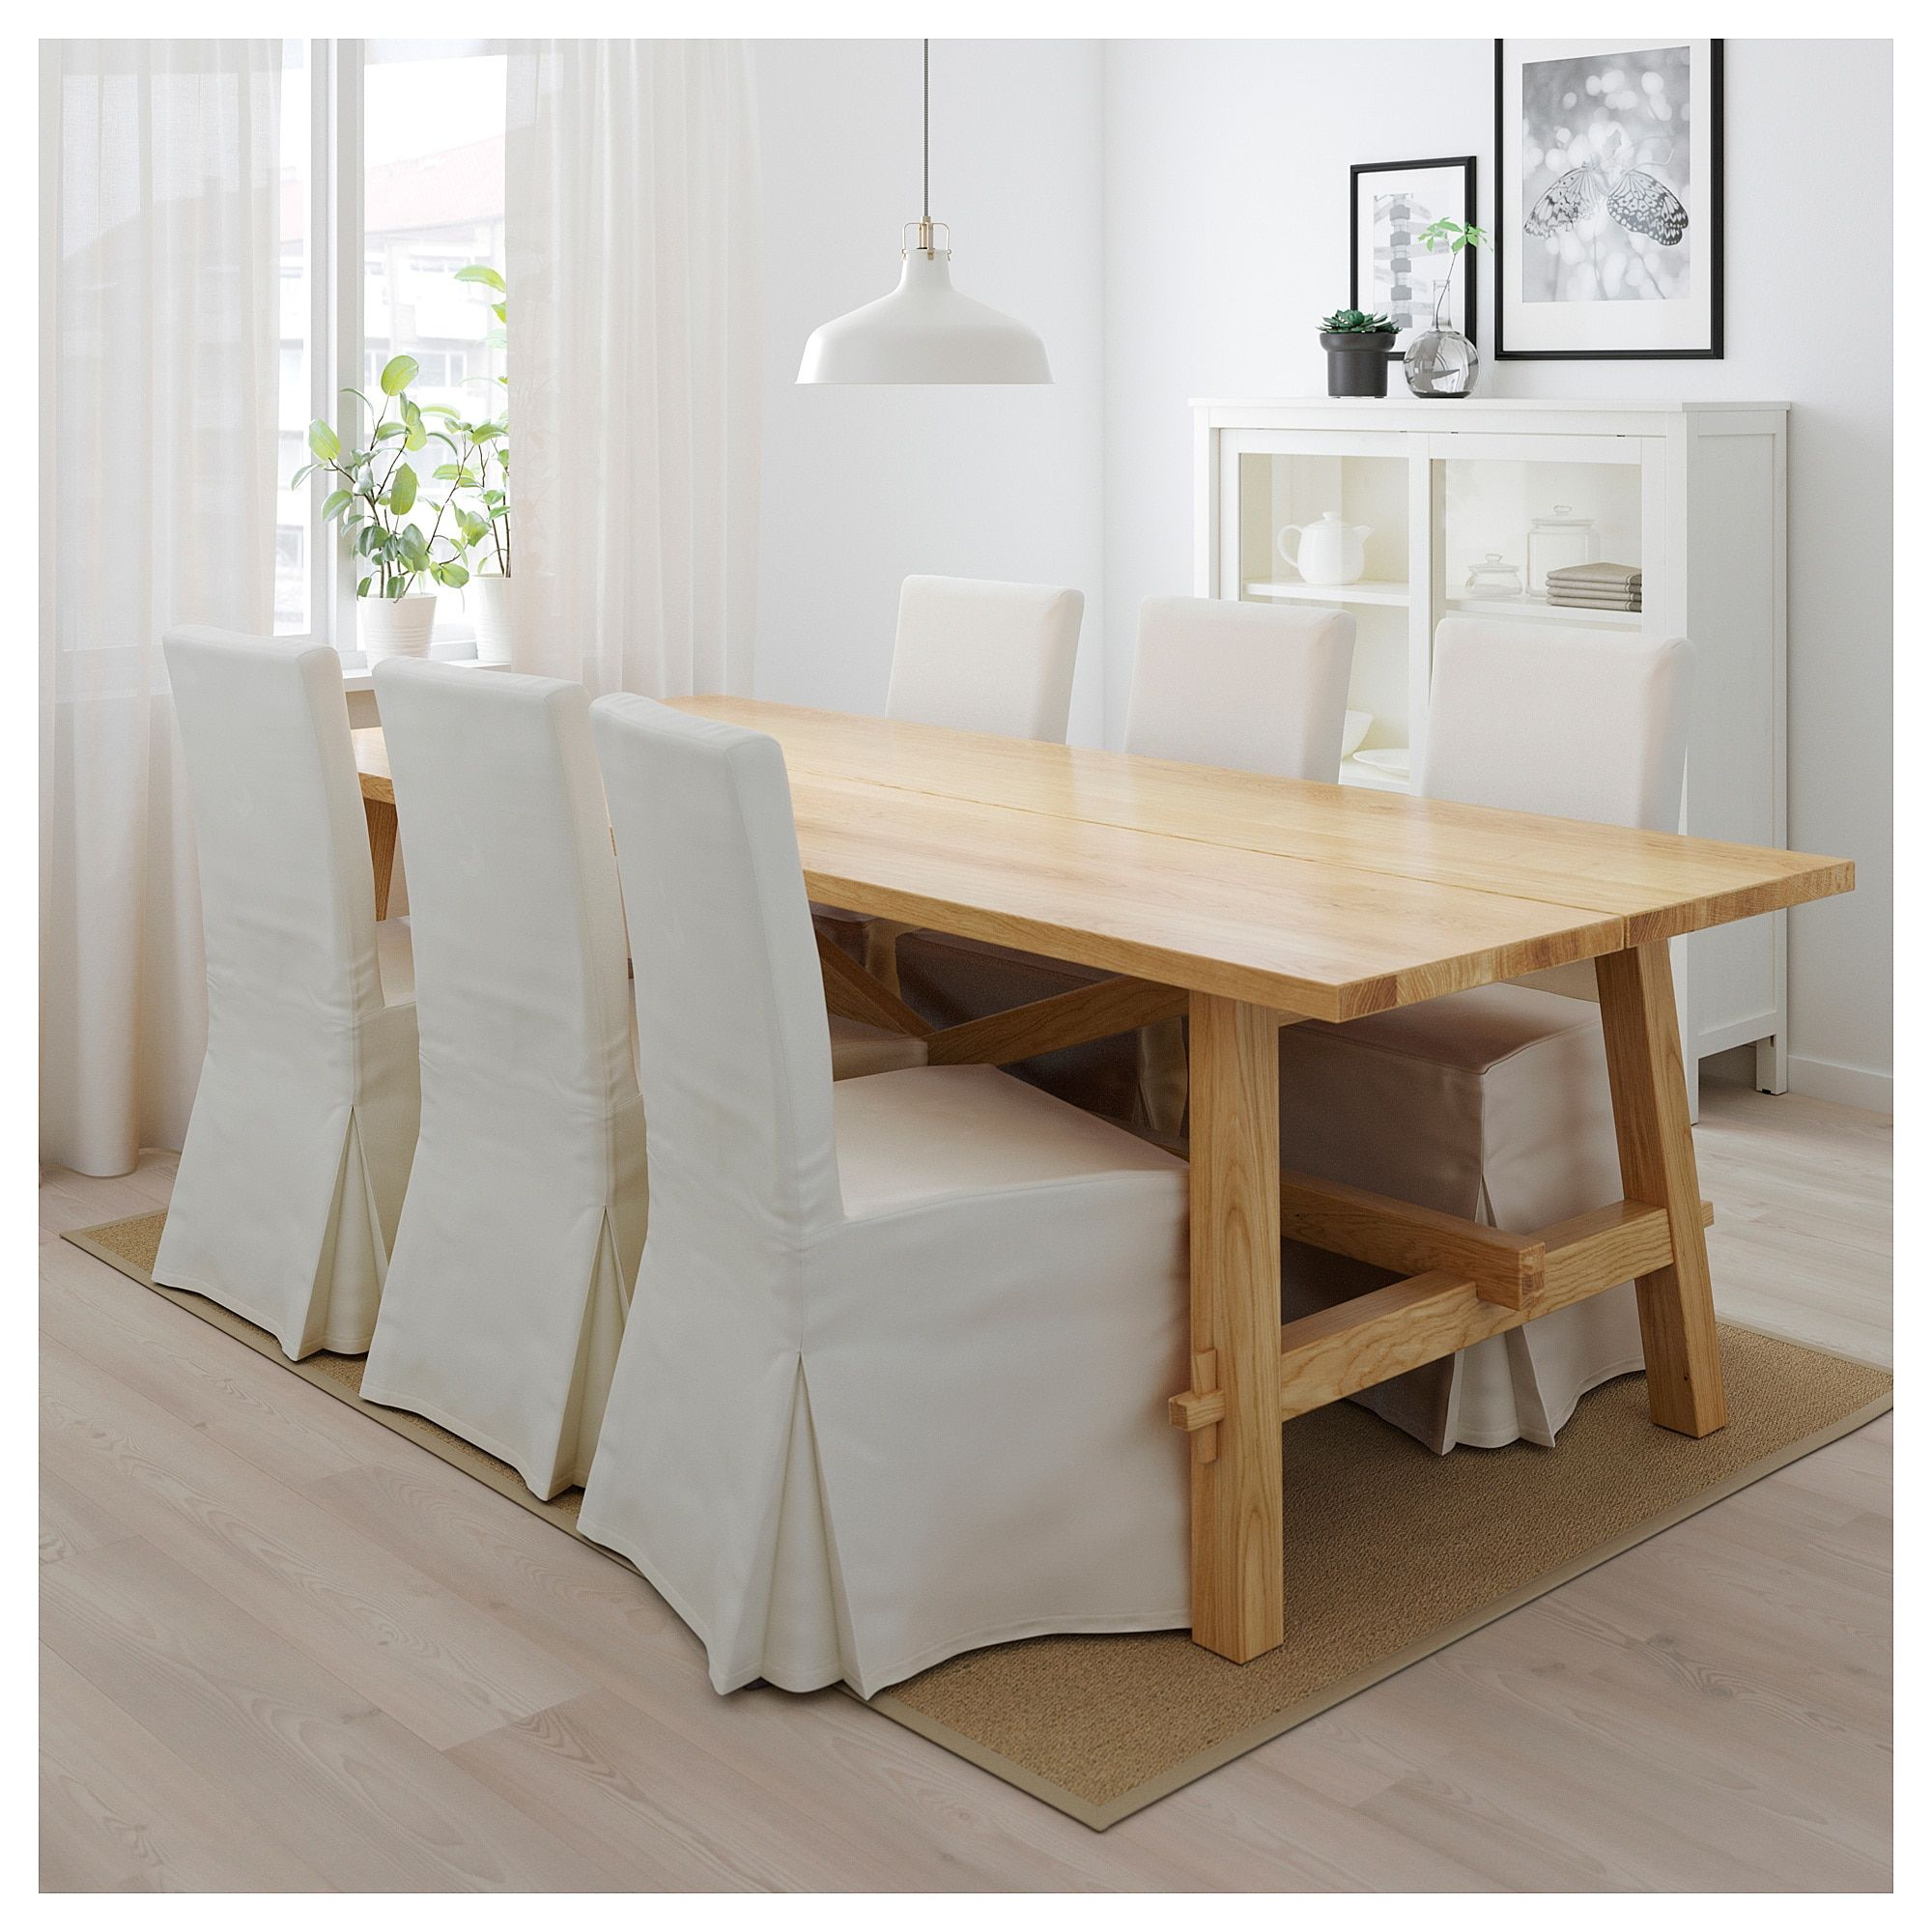 Wondrous Ikea Mockelby Table Oak Cabin Ideas Oak Table Ikea Evergreenethics Interior Chair Design Evergreenethicsorg